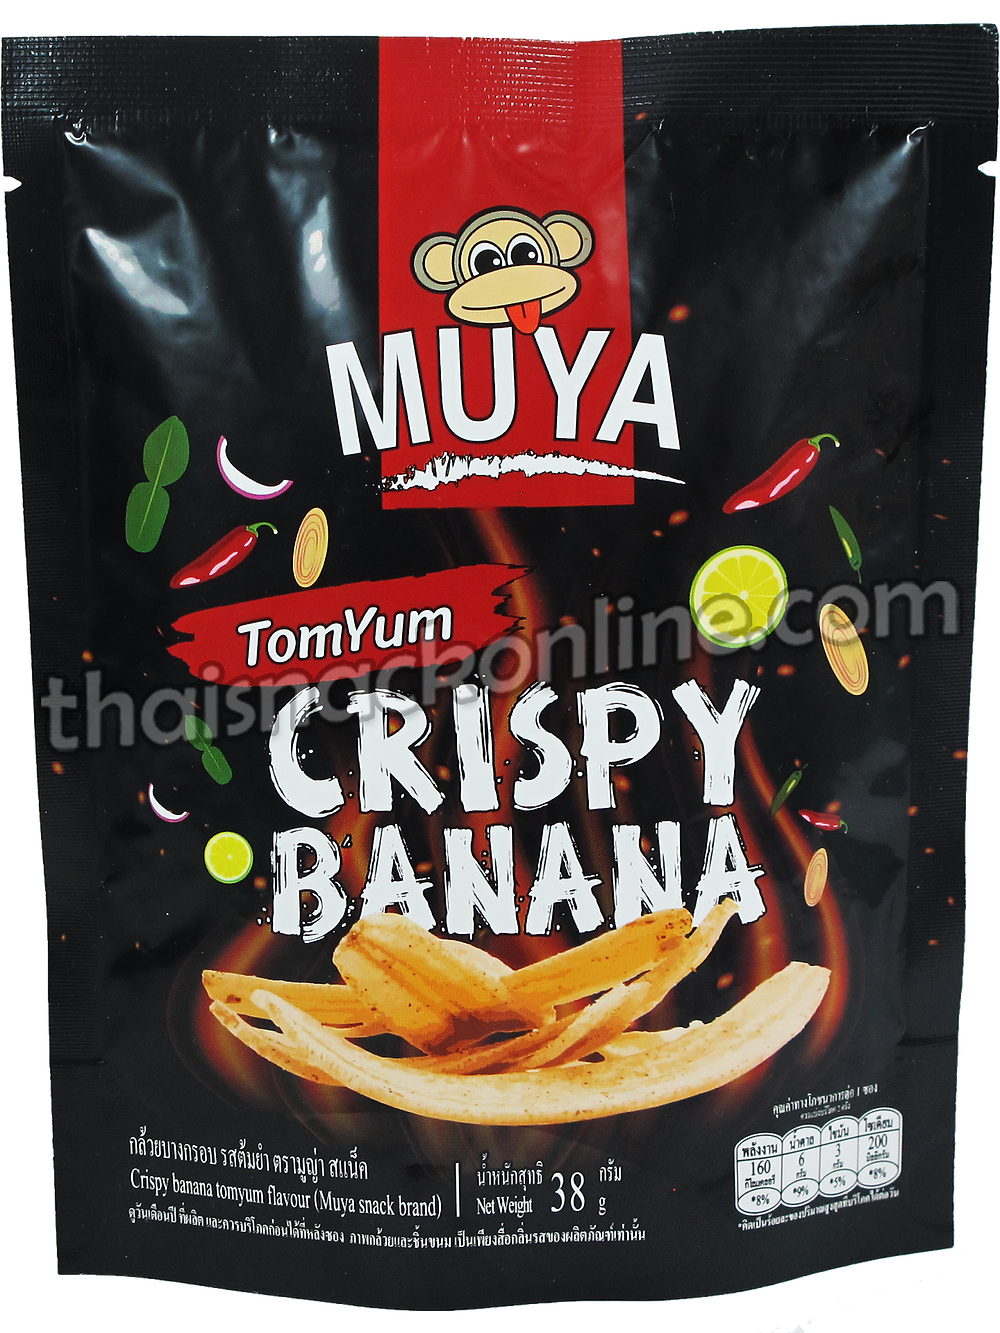 Muya - Crispy Banana Tom Yum